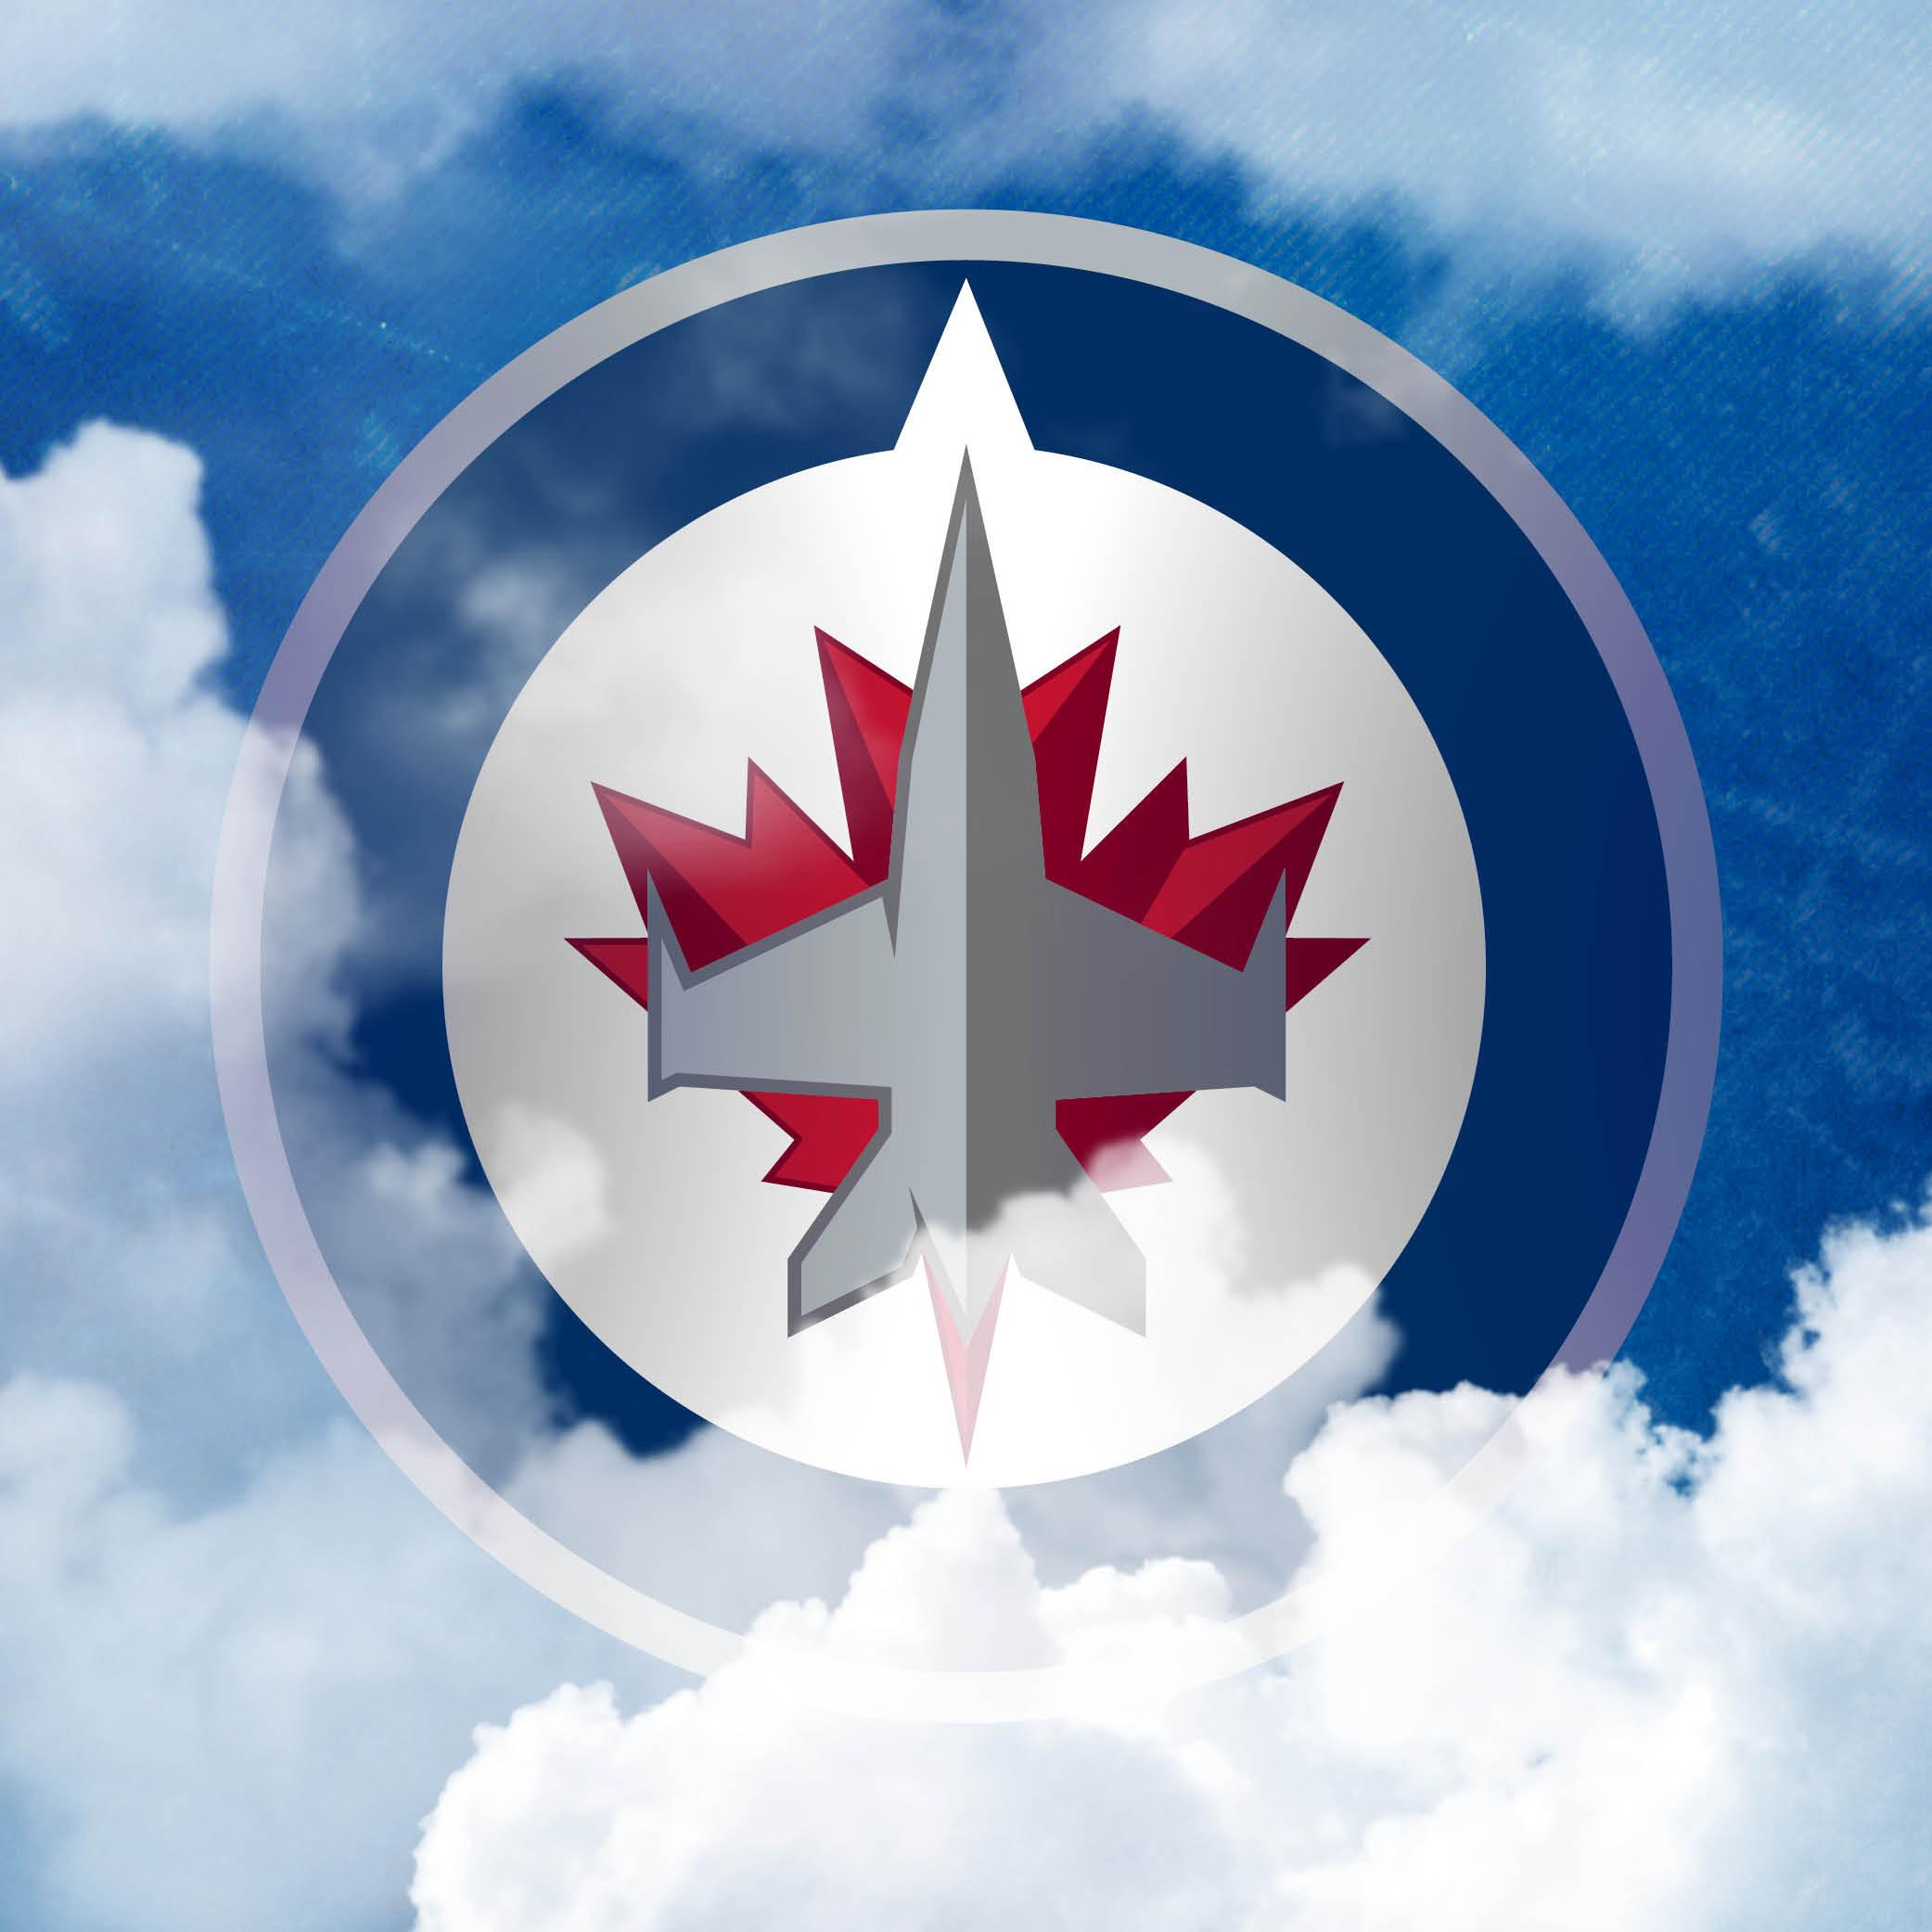 Winnipeg Jets Wallpapers High Resolution #8586PS9 - 4USkY